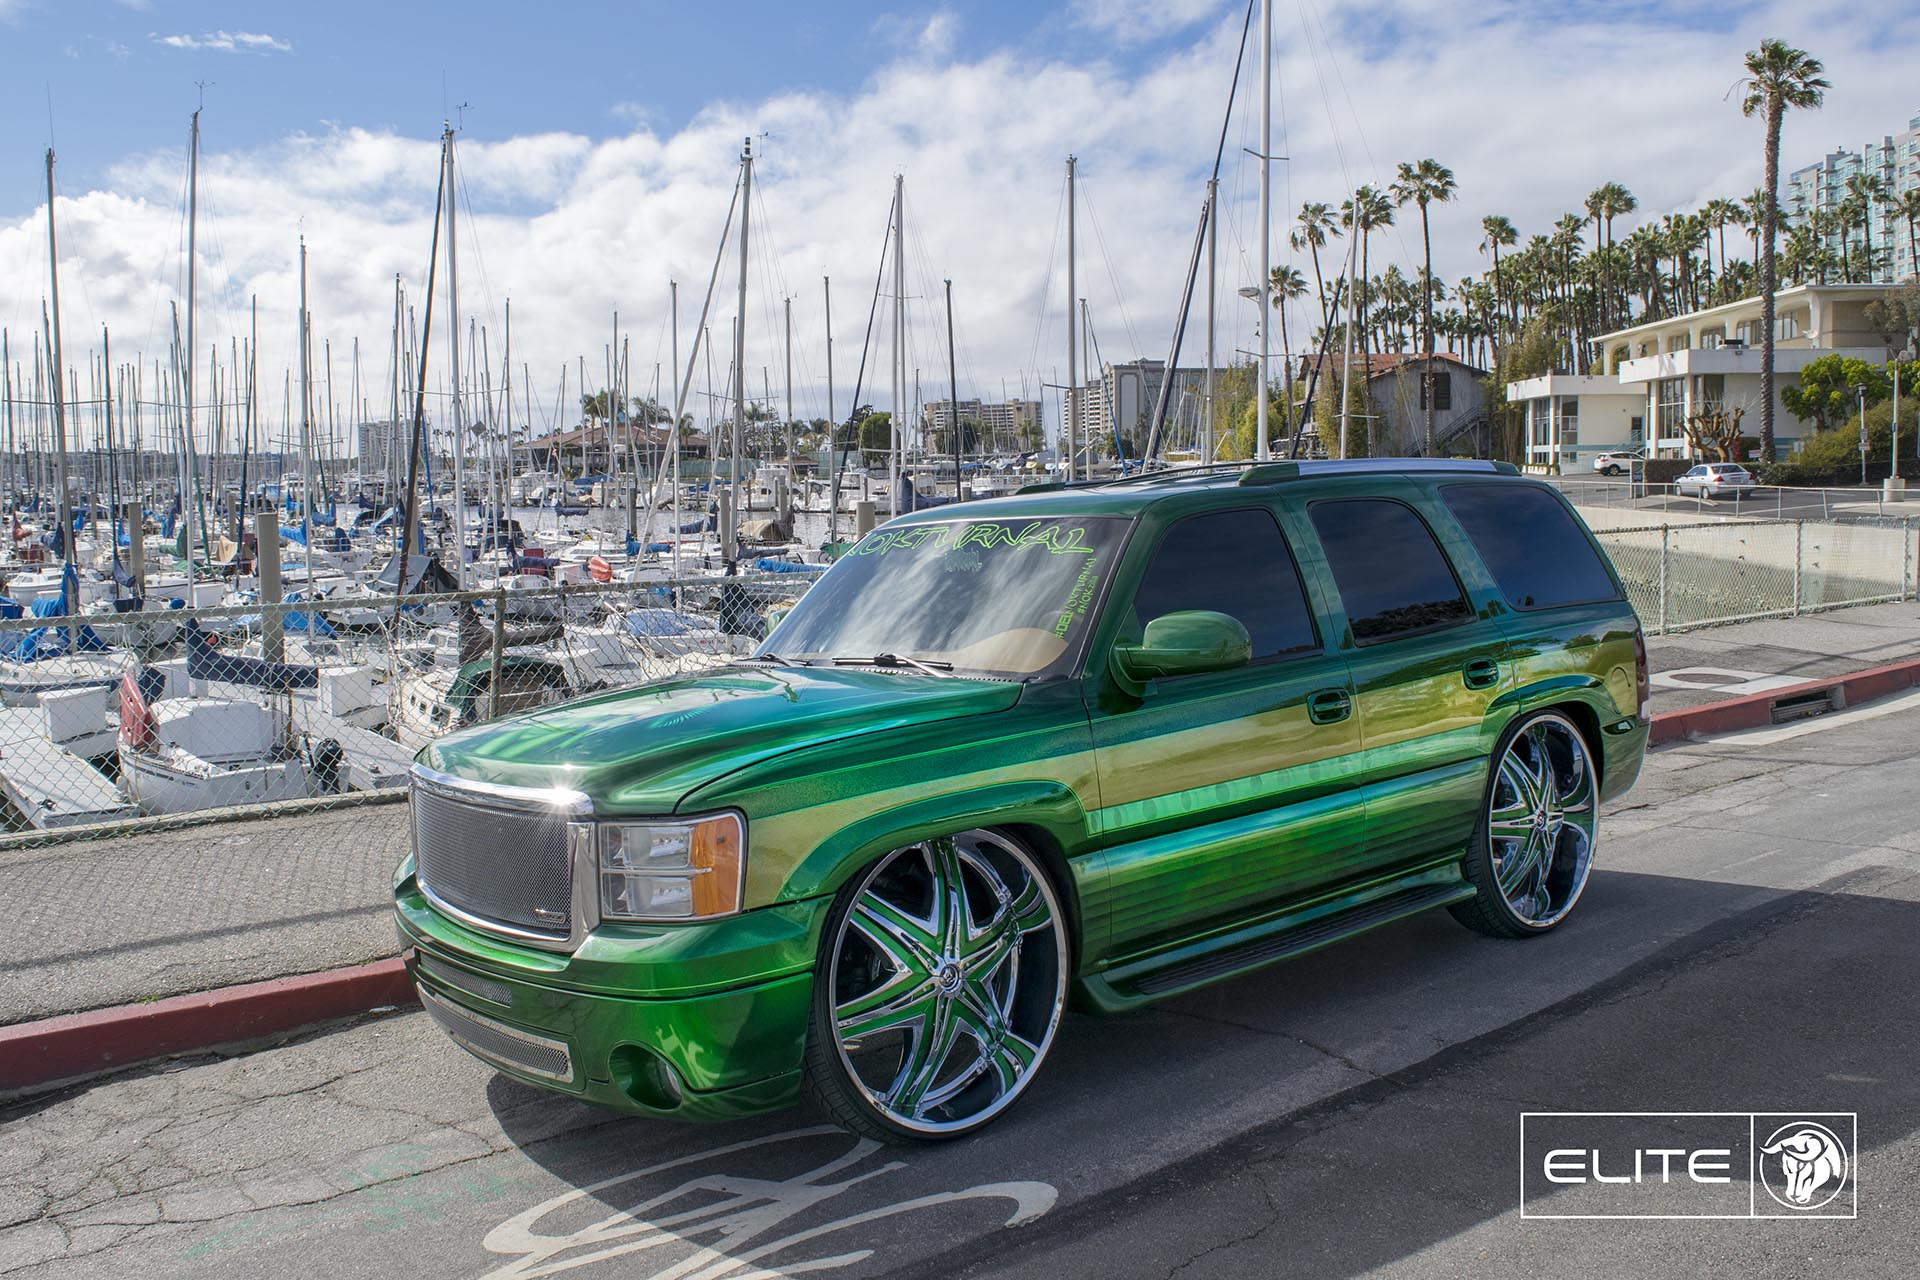 30″ Chrome Diablo Elite Wheels on a GNC Yukon